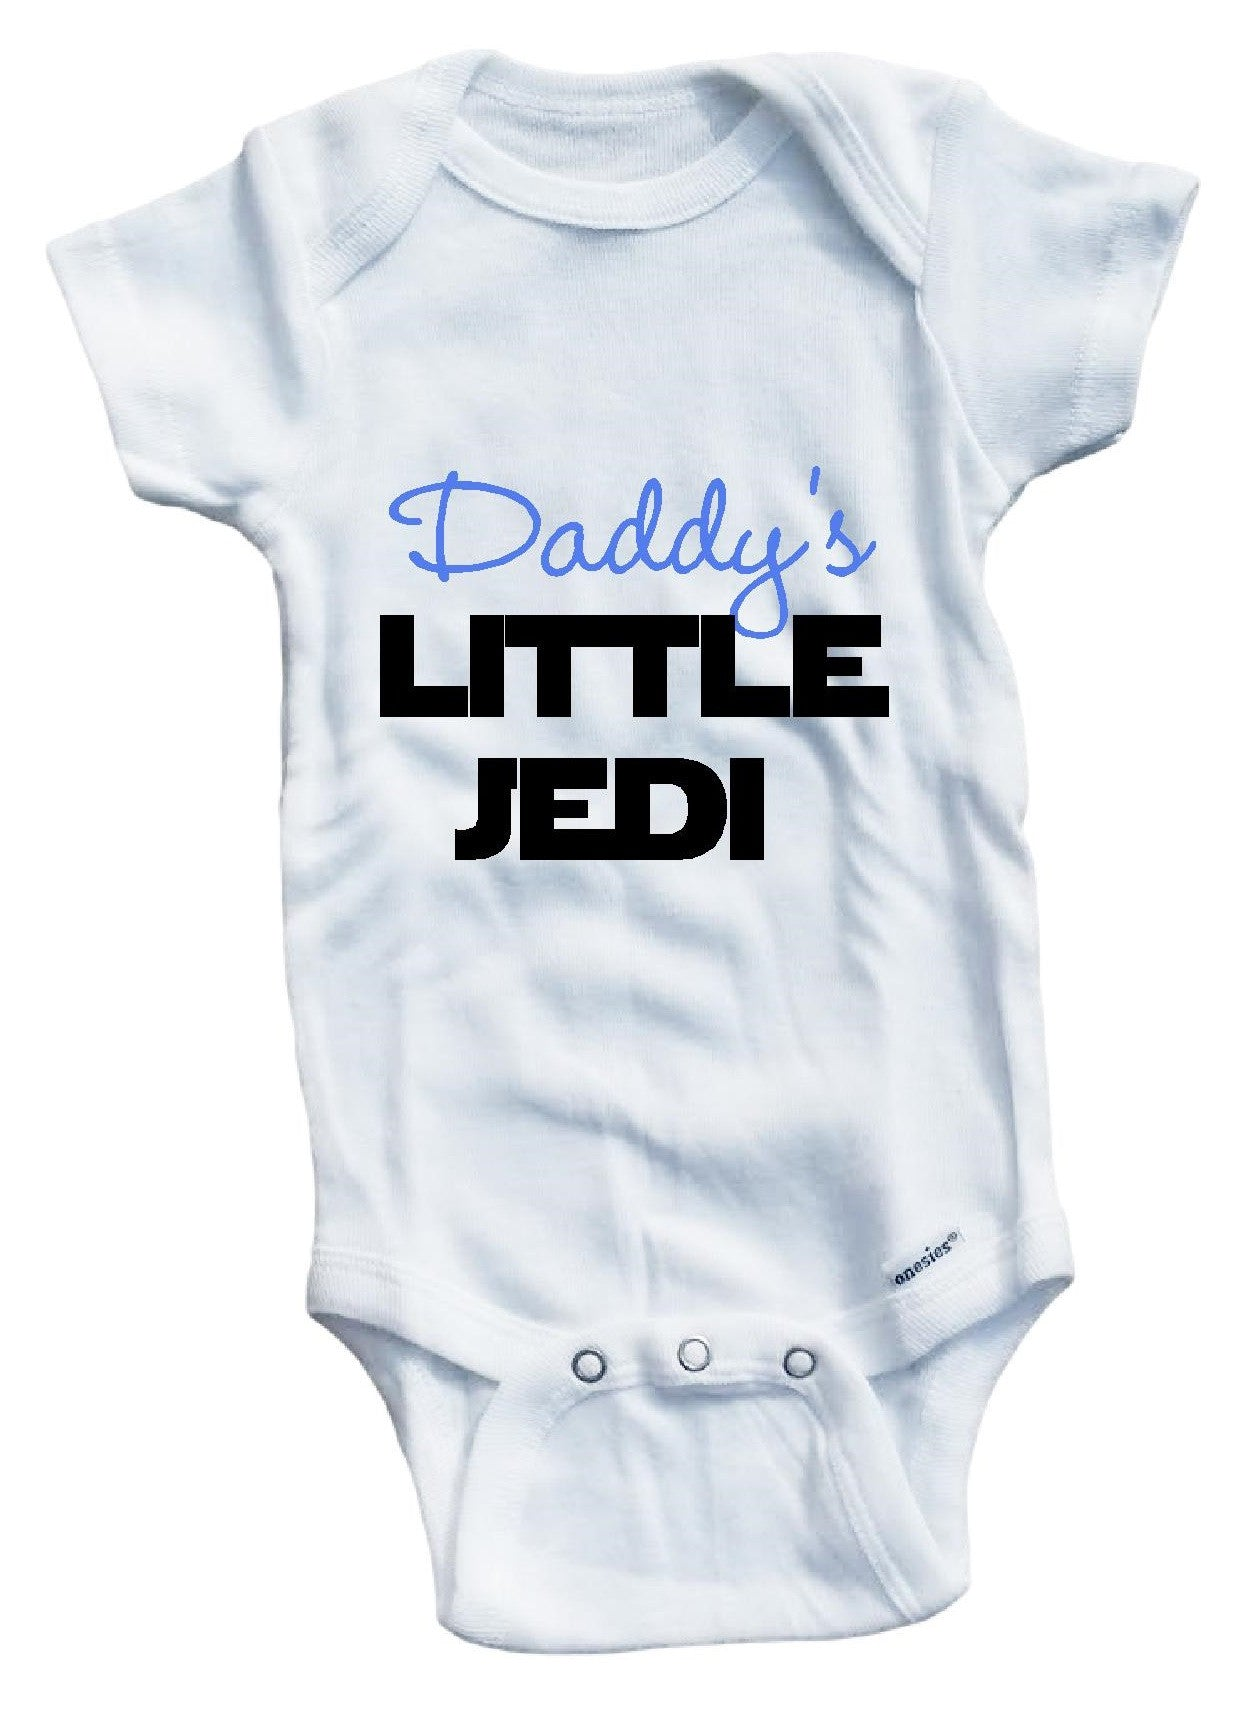 9d3d3c547 Daddy s little Jedi cute infant clothing funny baby clothes one ...